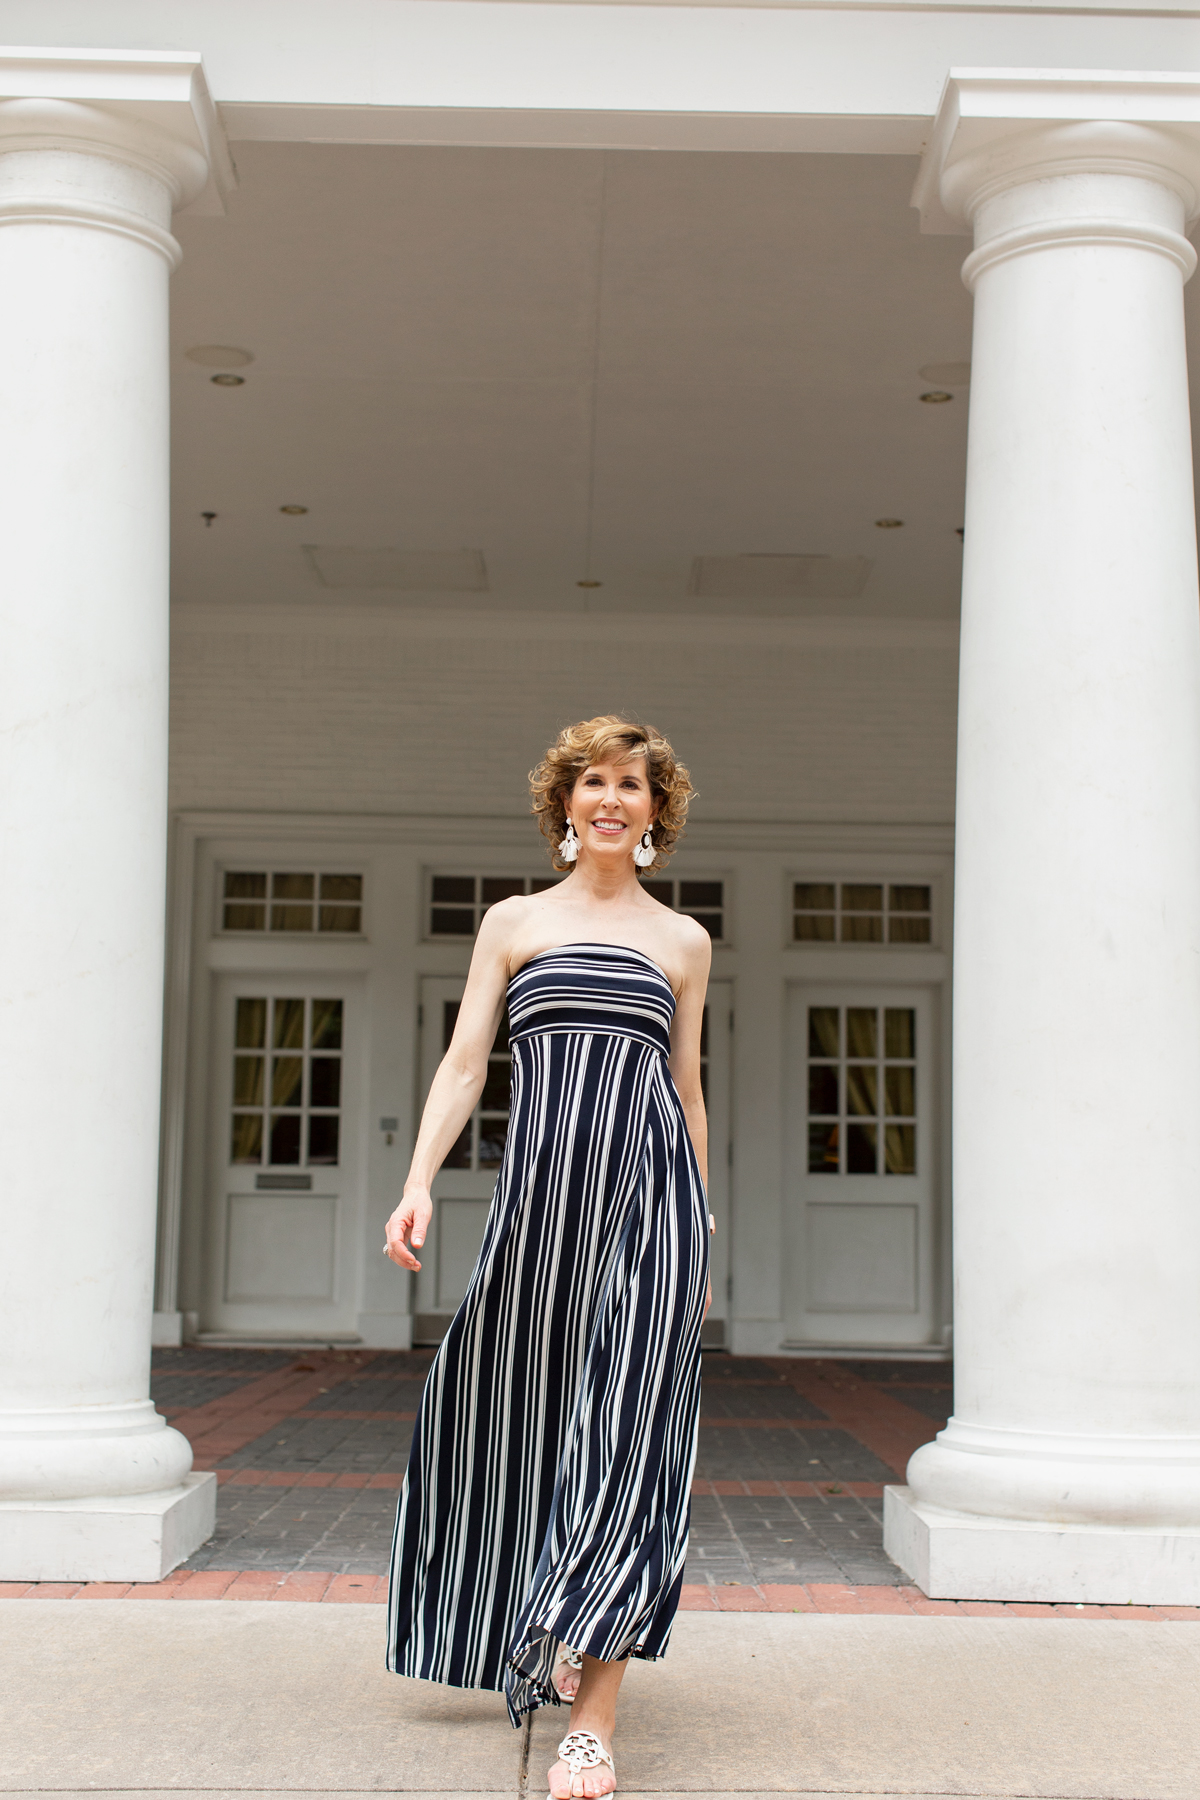 woman over fifty wearing summer statement earrings and blue and white maxi dress in front of a white building with columns